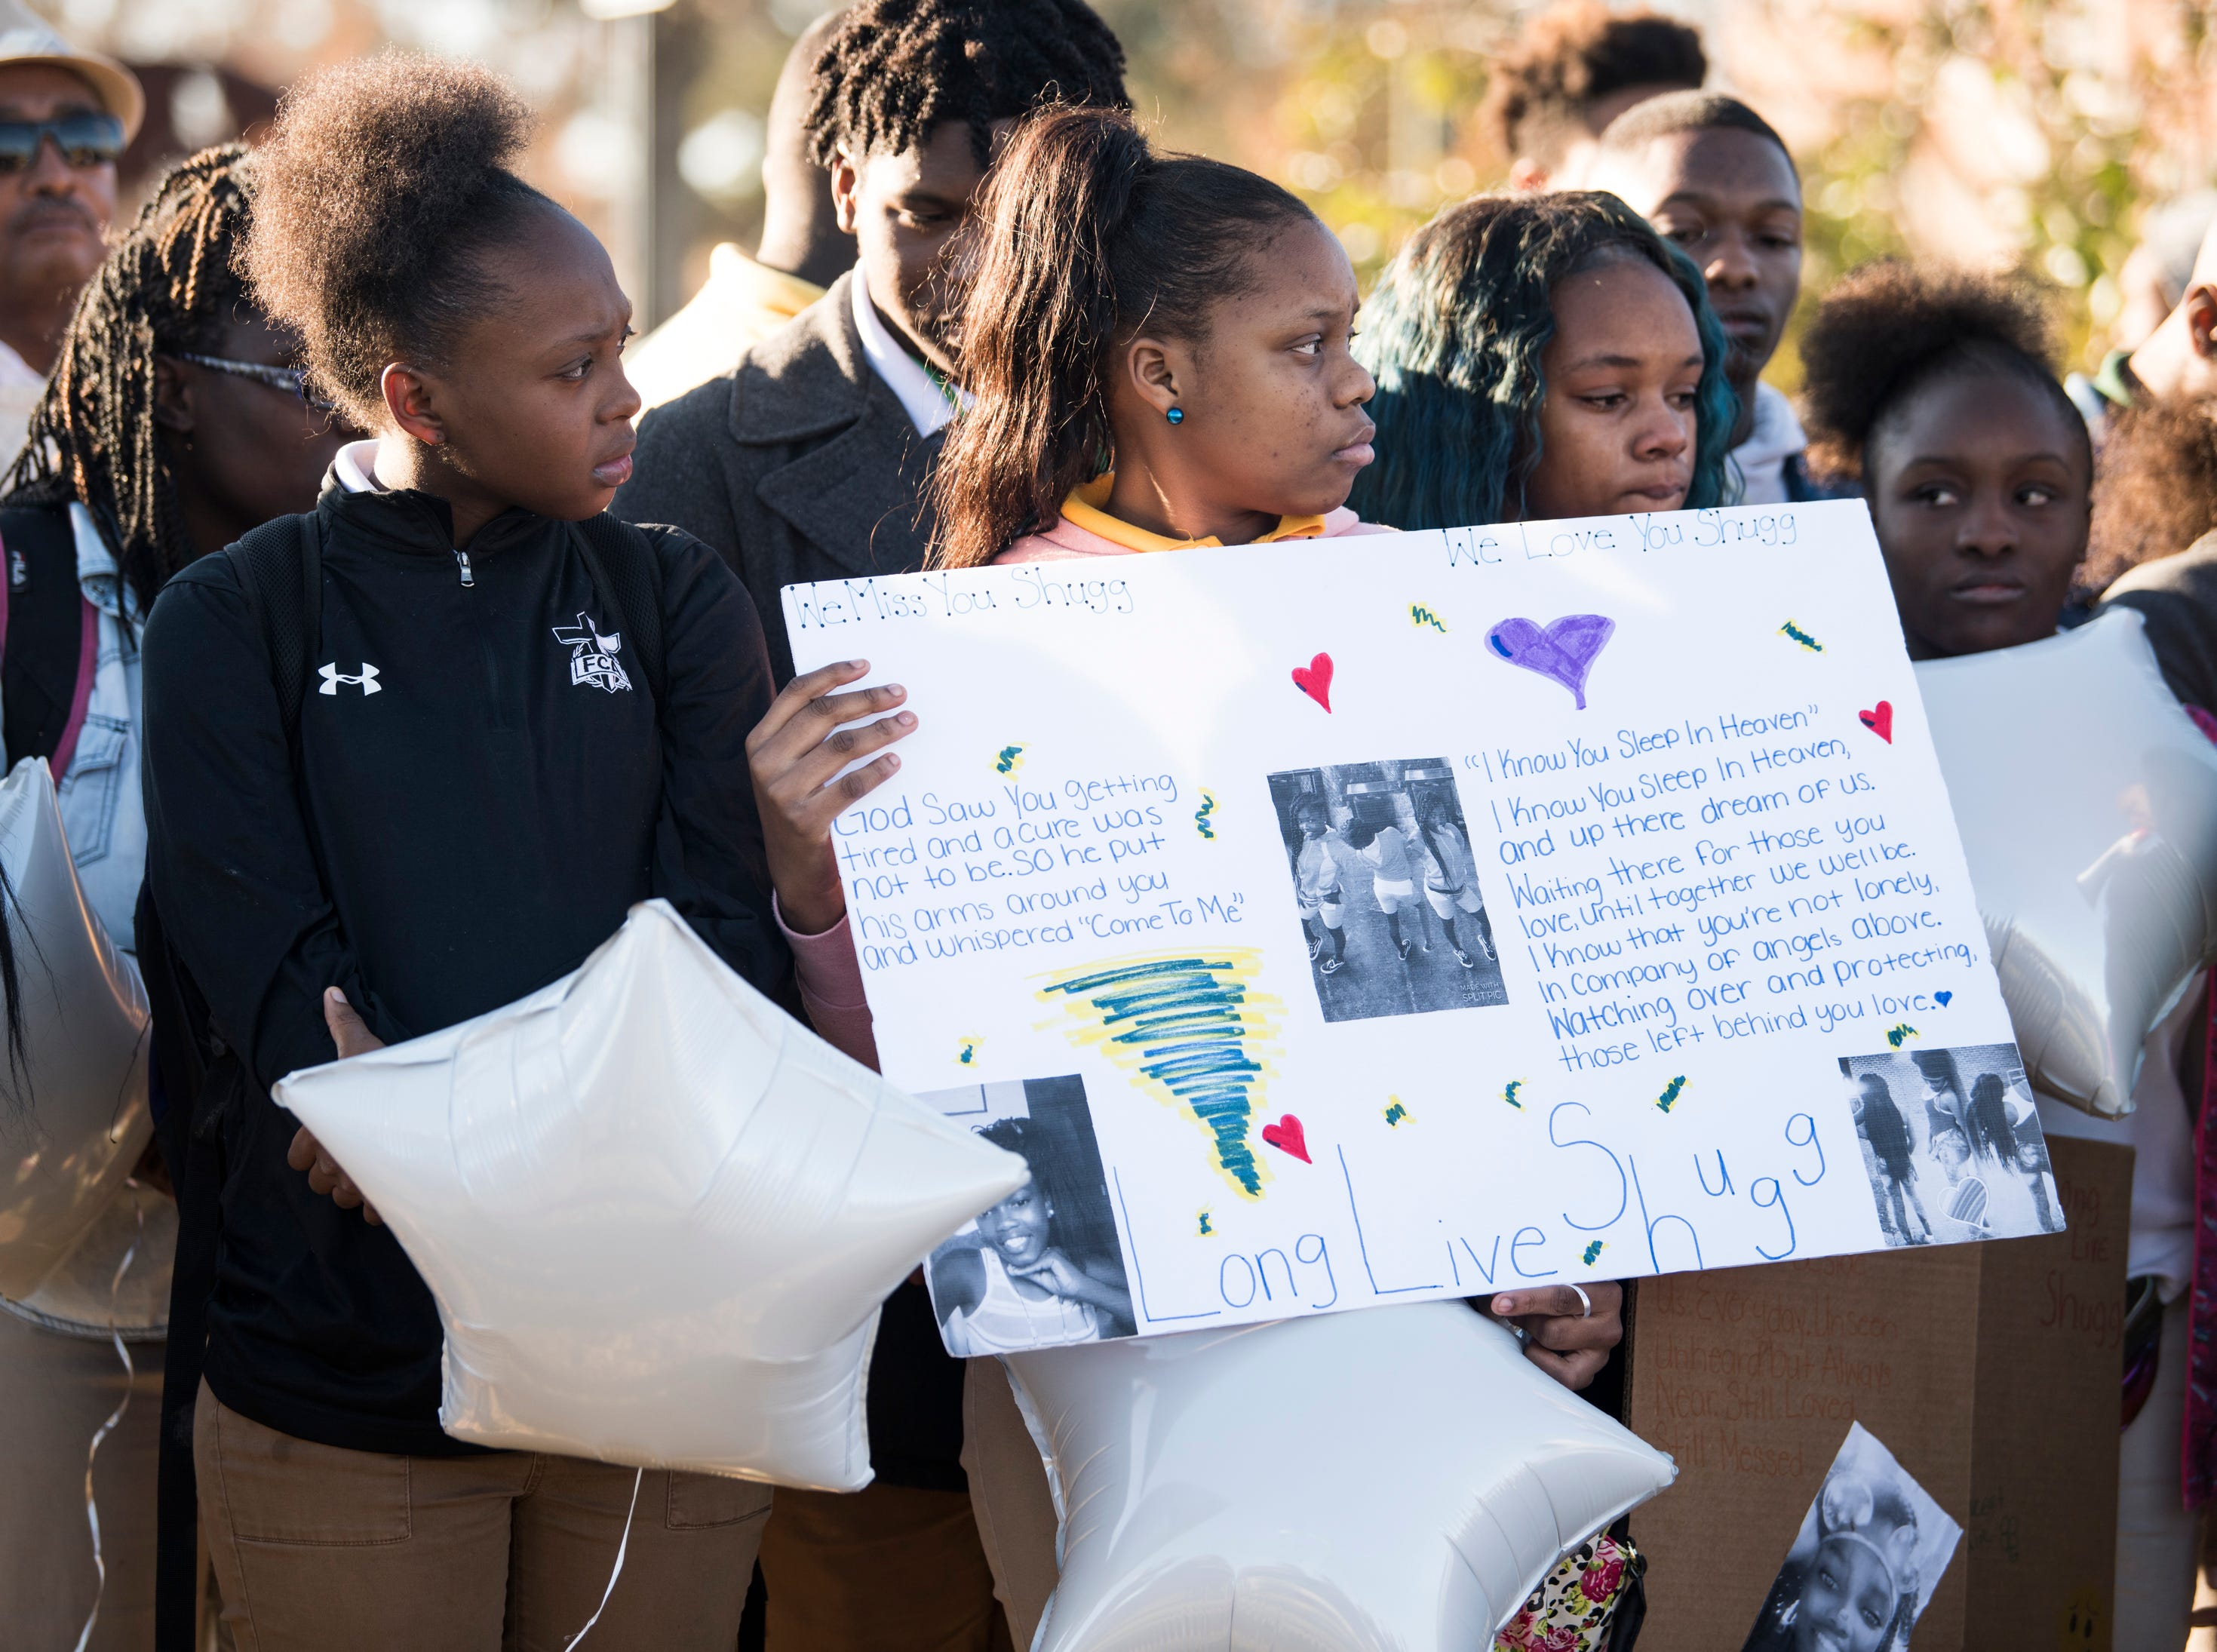 Friends remember Keiauna Williams during a vigil across from Carver High School in Montgomery, Ala., on Tuesday, Dec. 4, 2018. Williams was died after being hit by a car Saturday night.